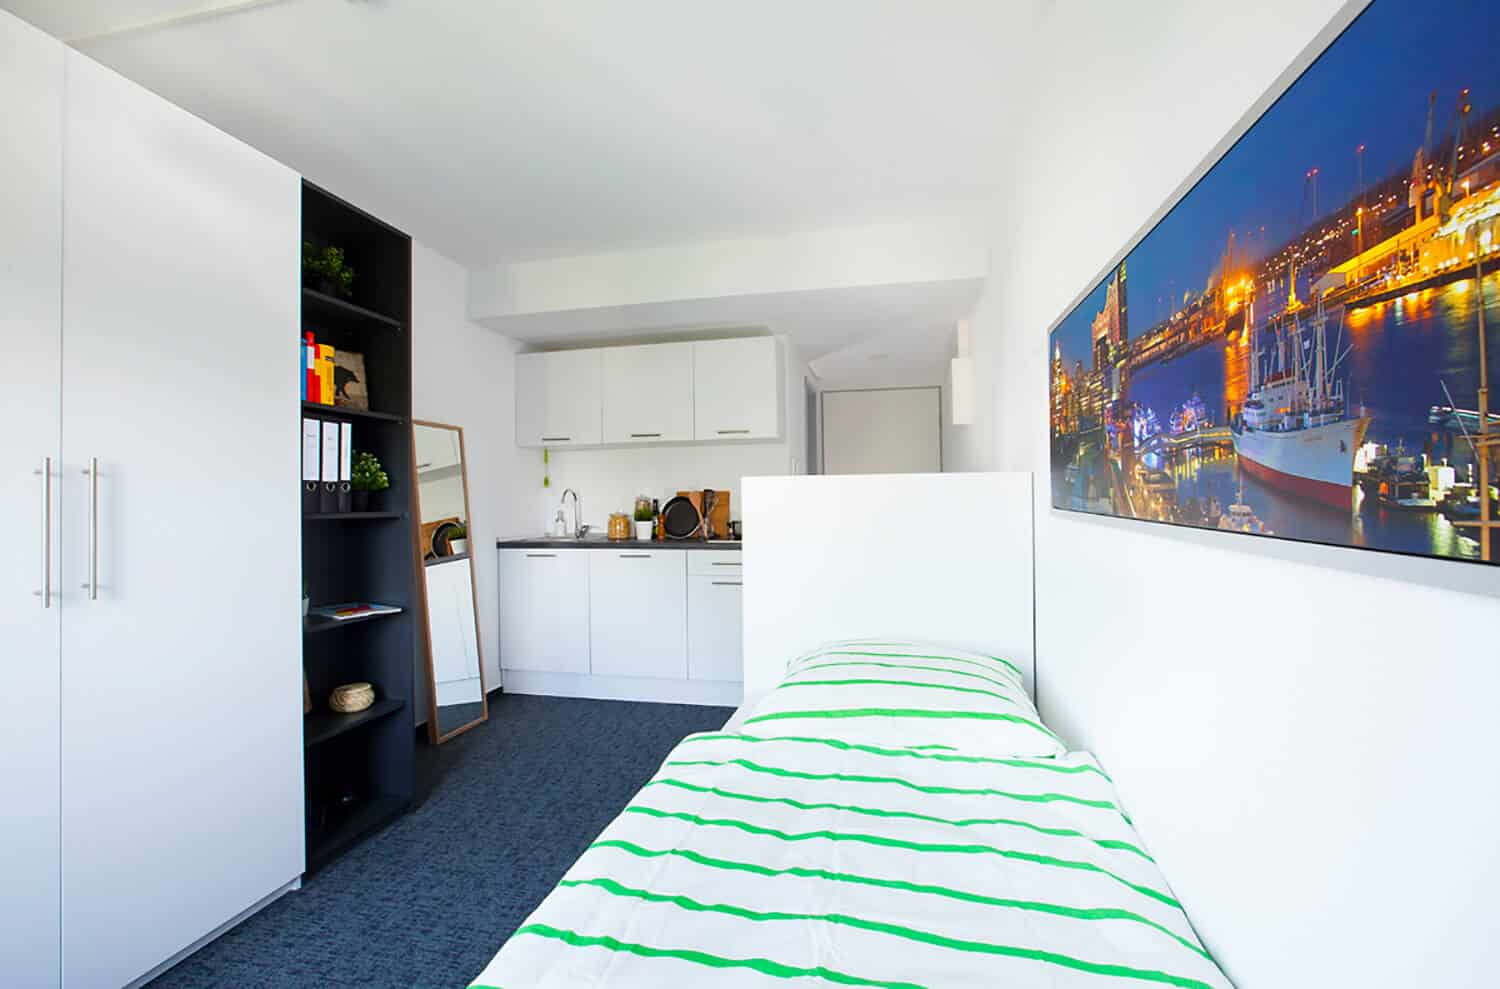 Wohnung in Hamburg Wandsbek 96 rooms